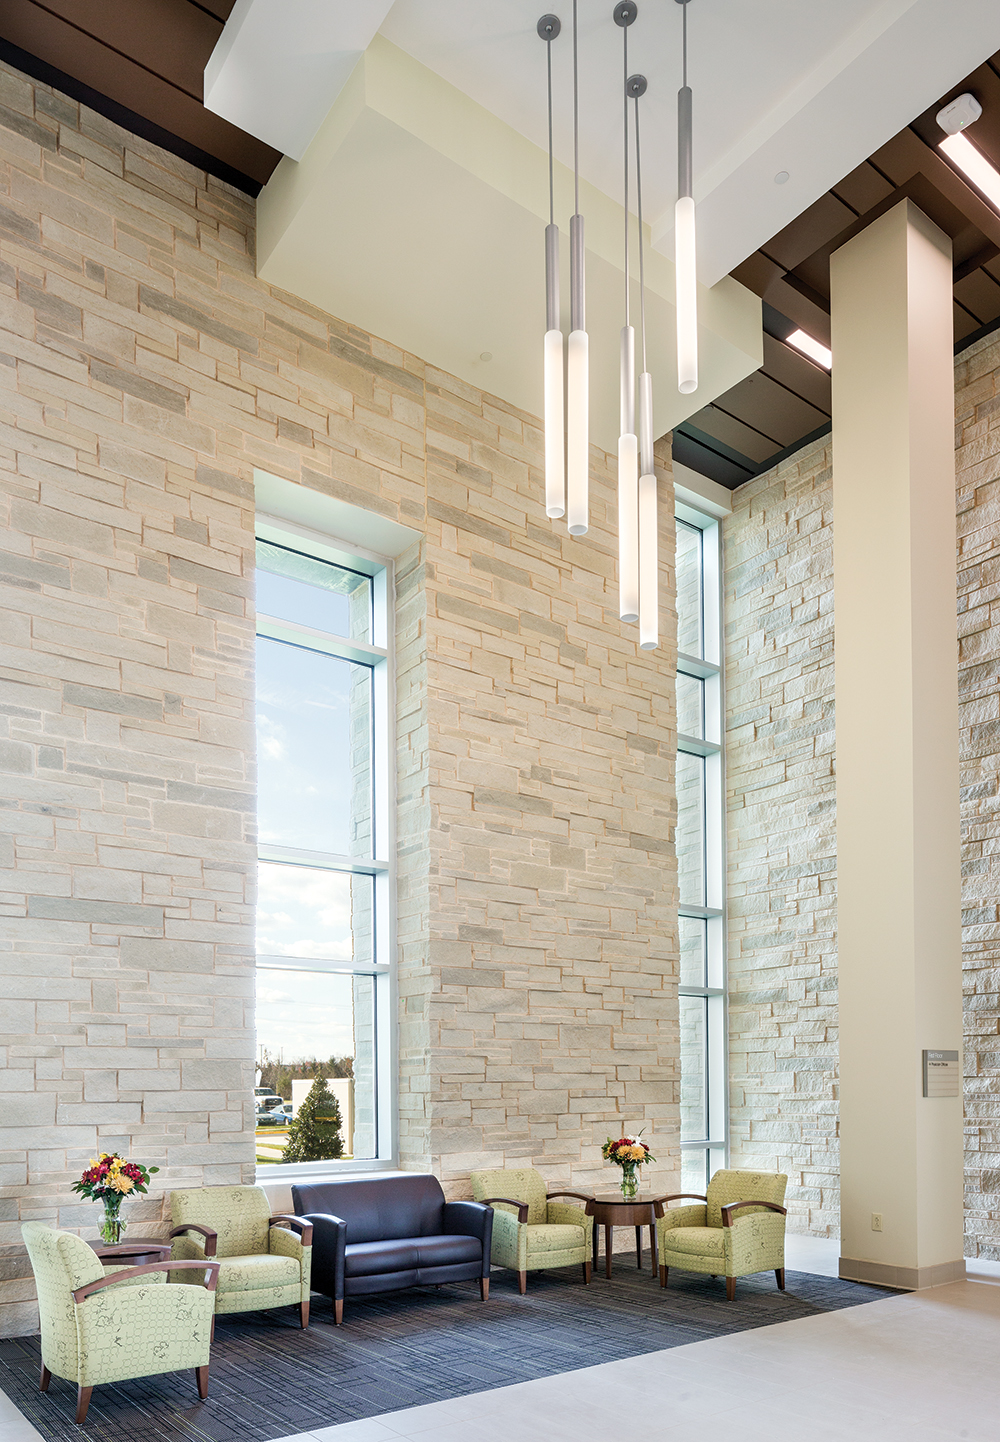 Sequence pendants highlight a clean, comforting healthcare design in a large waiting area with stone walls and green furniture.